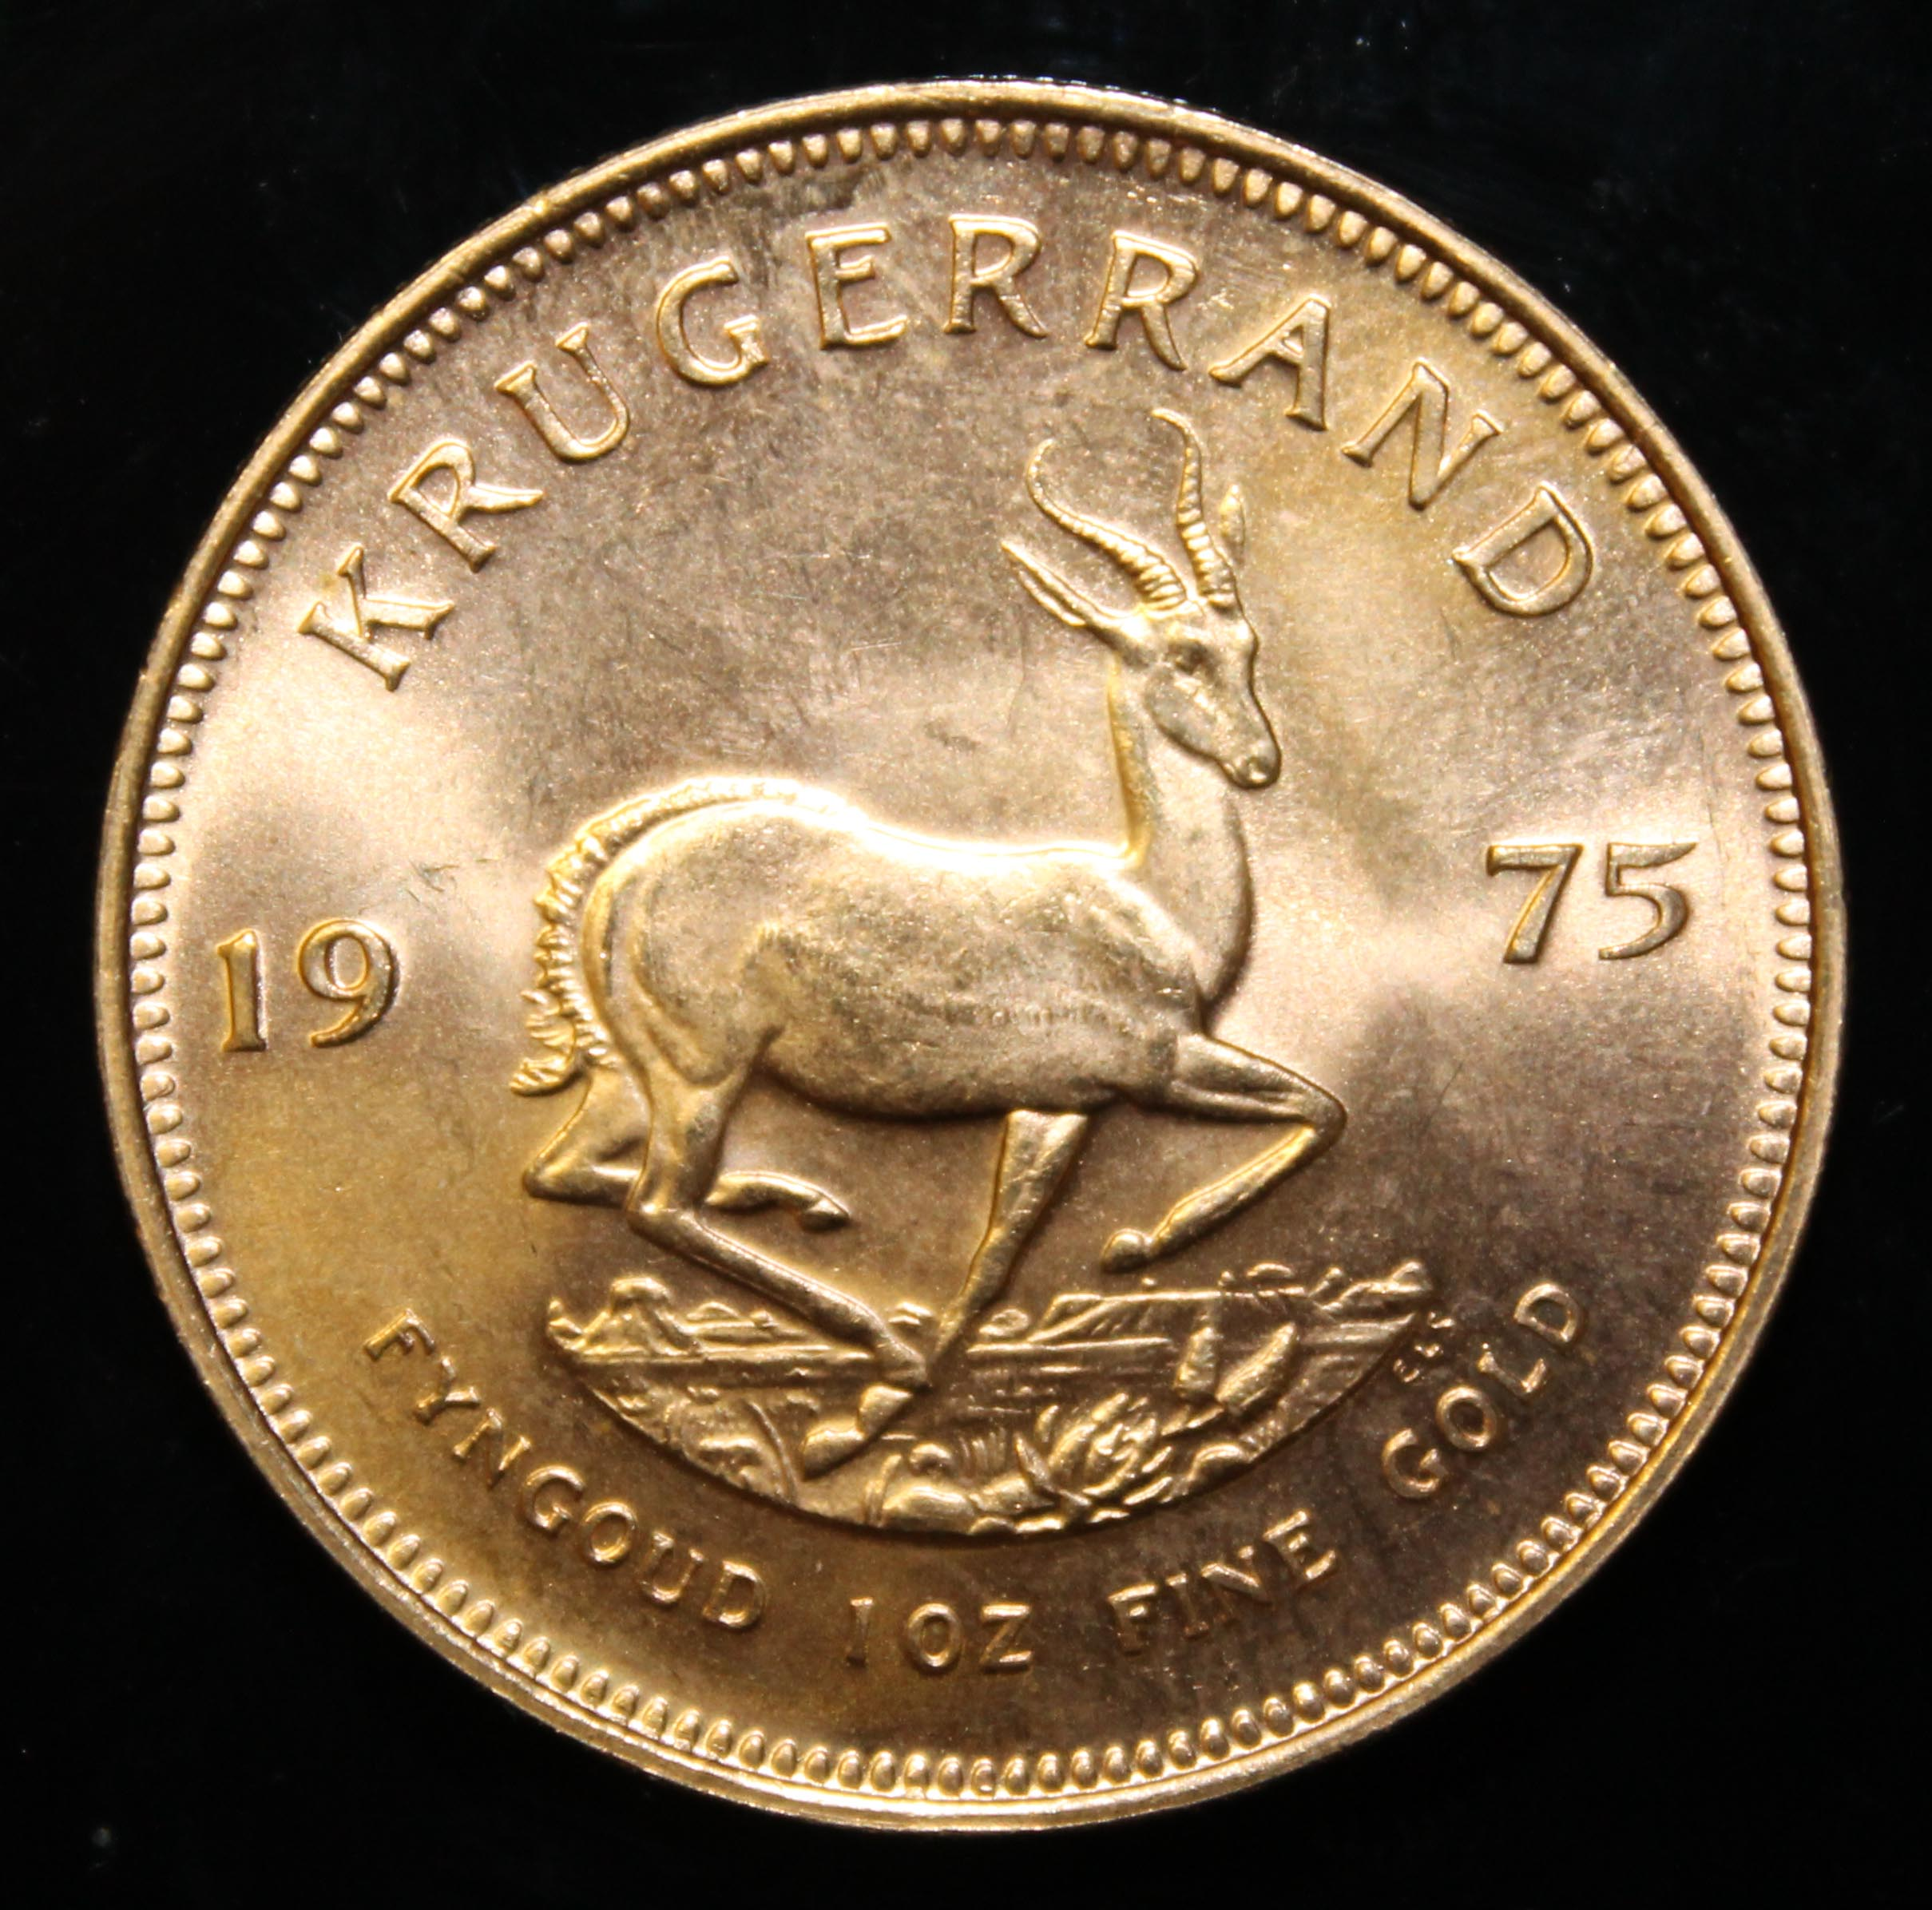 South Africa, 1975 Krugerrand, 1 oz. fine gold (91.67%) ONLY 10% BUYER'S PREMIUM (INCLUSIVE OF - Image 2 of 2